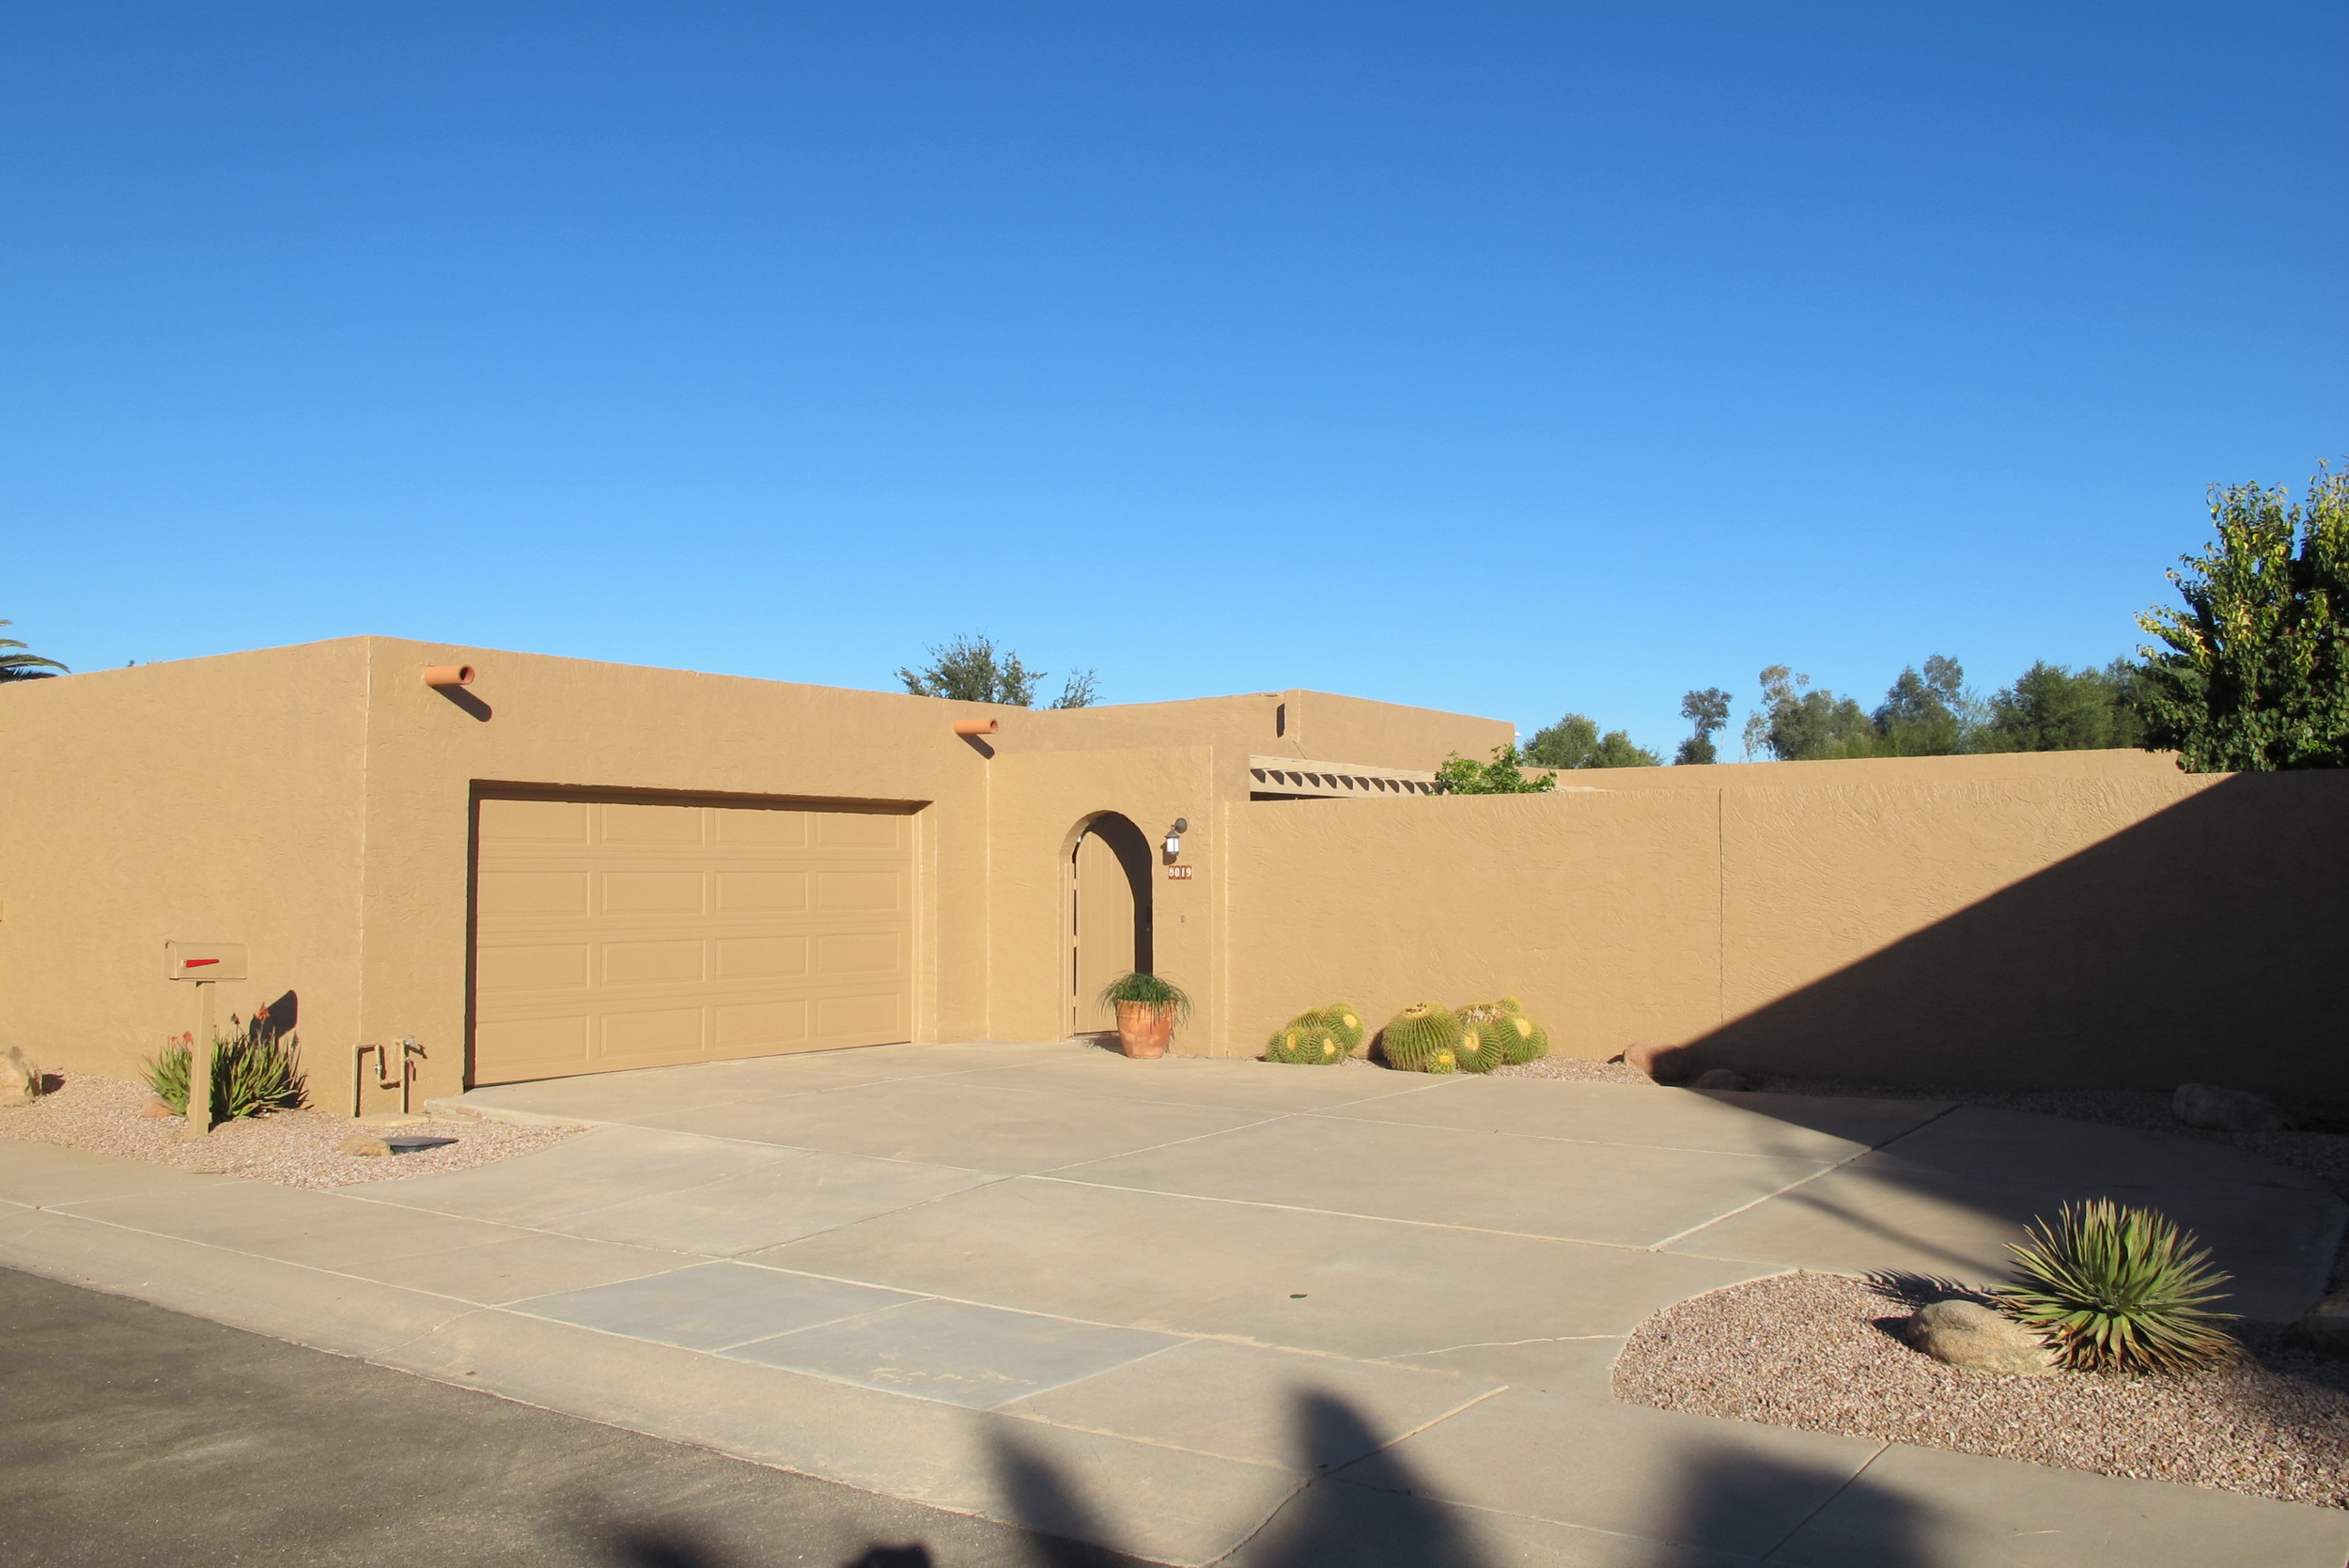 Final new exterior paint adds value